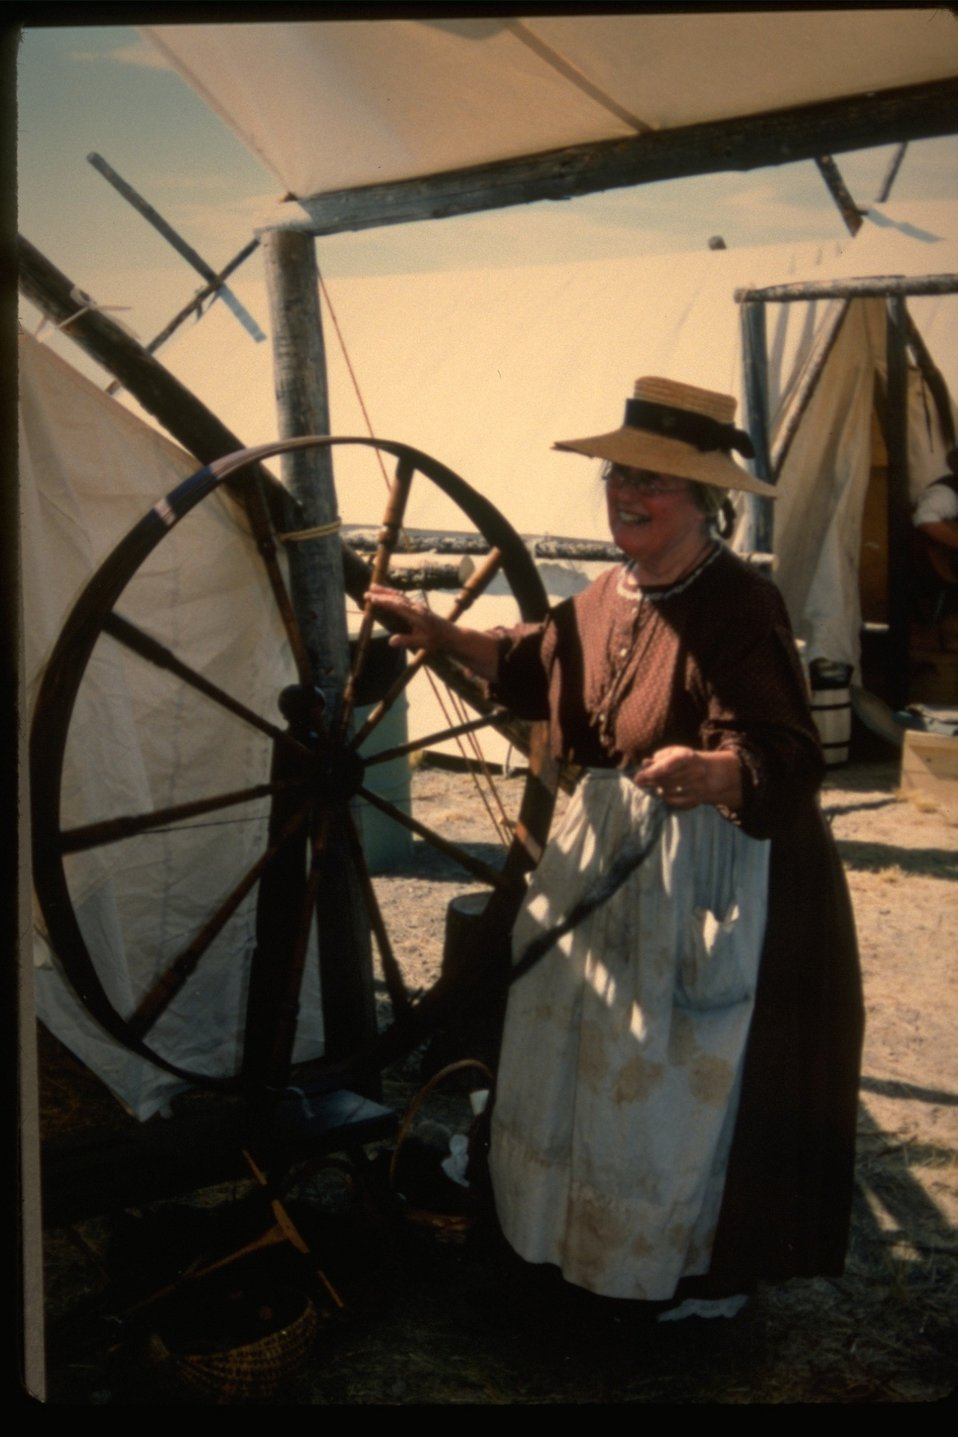 A display of spinning at the Pioneer Festival at the NHOTIC.